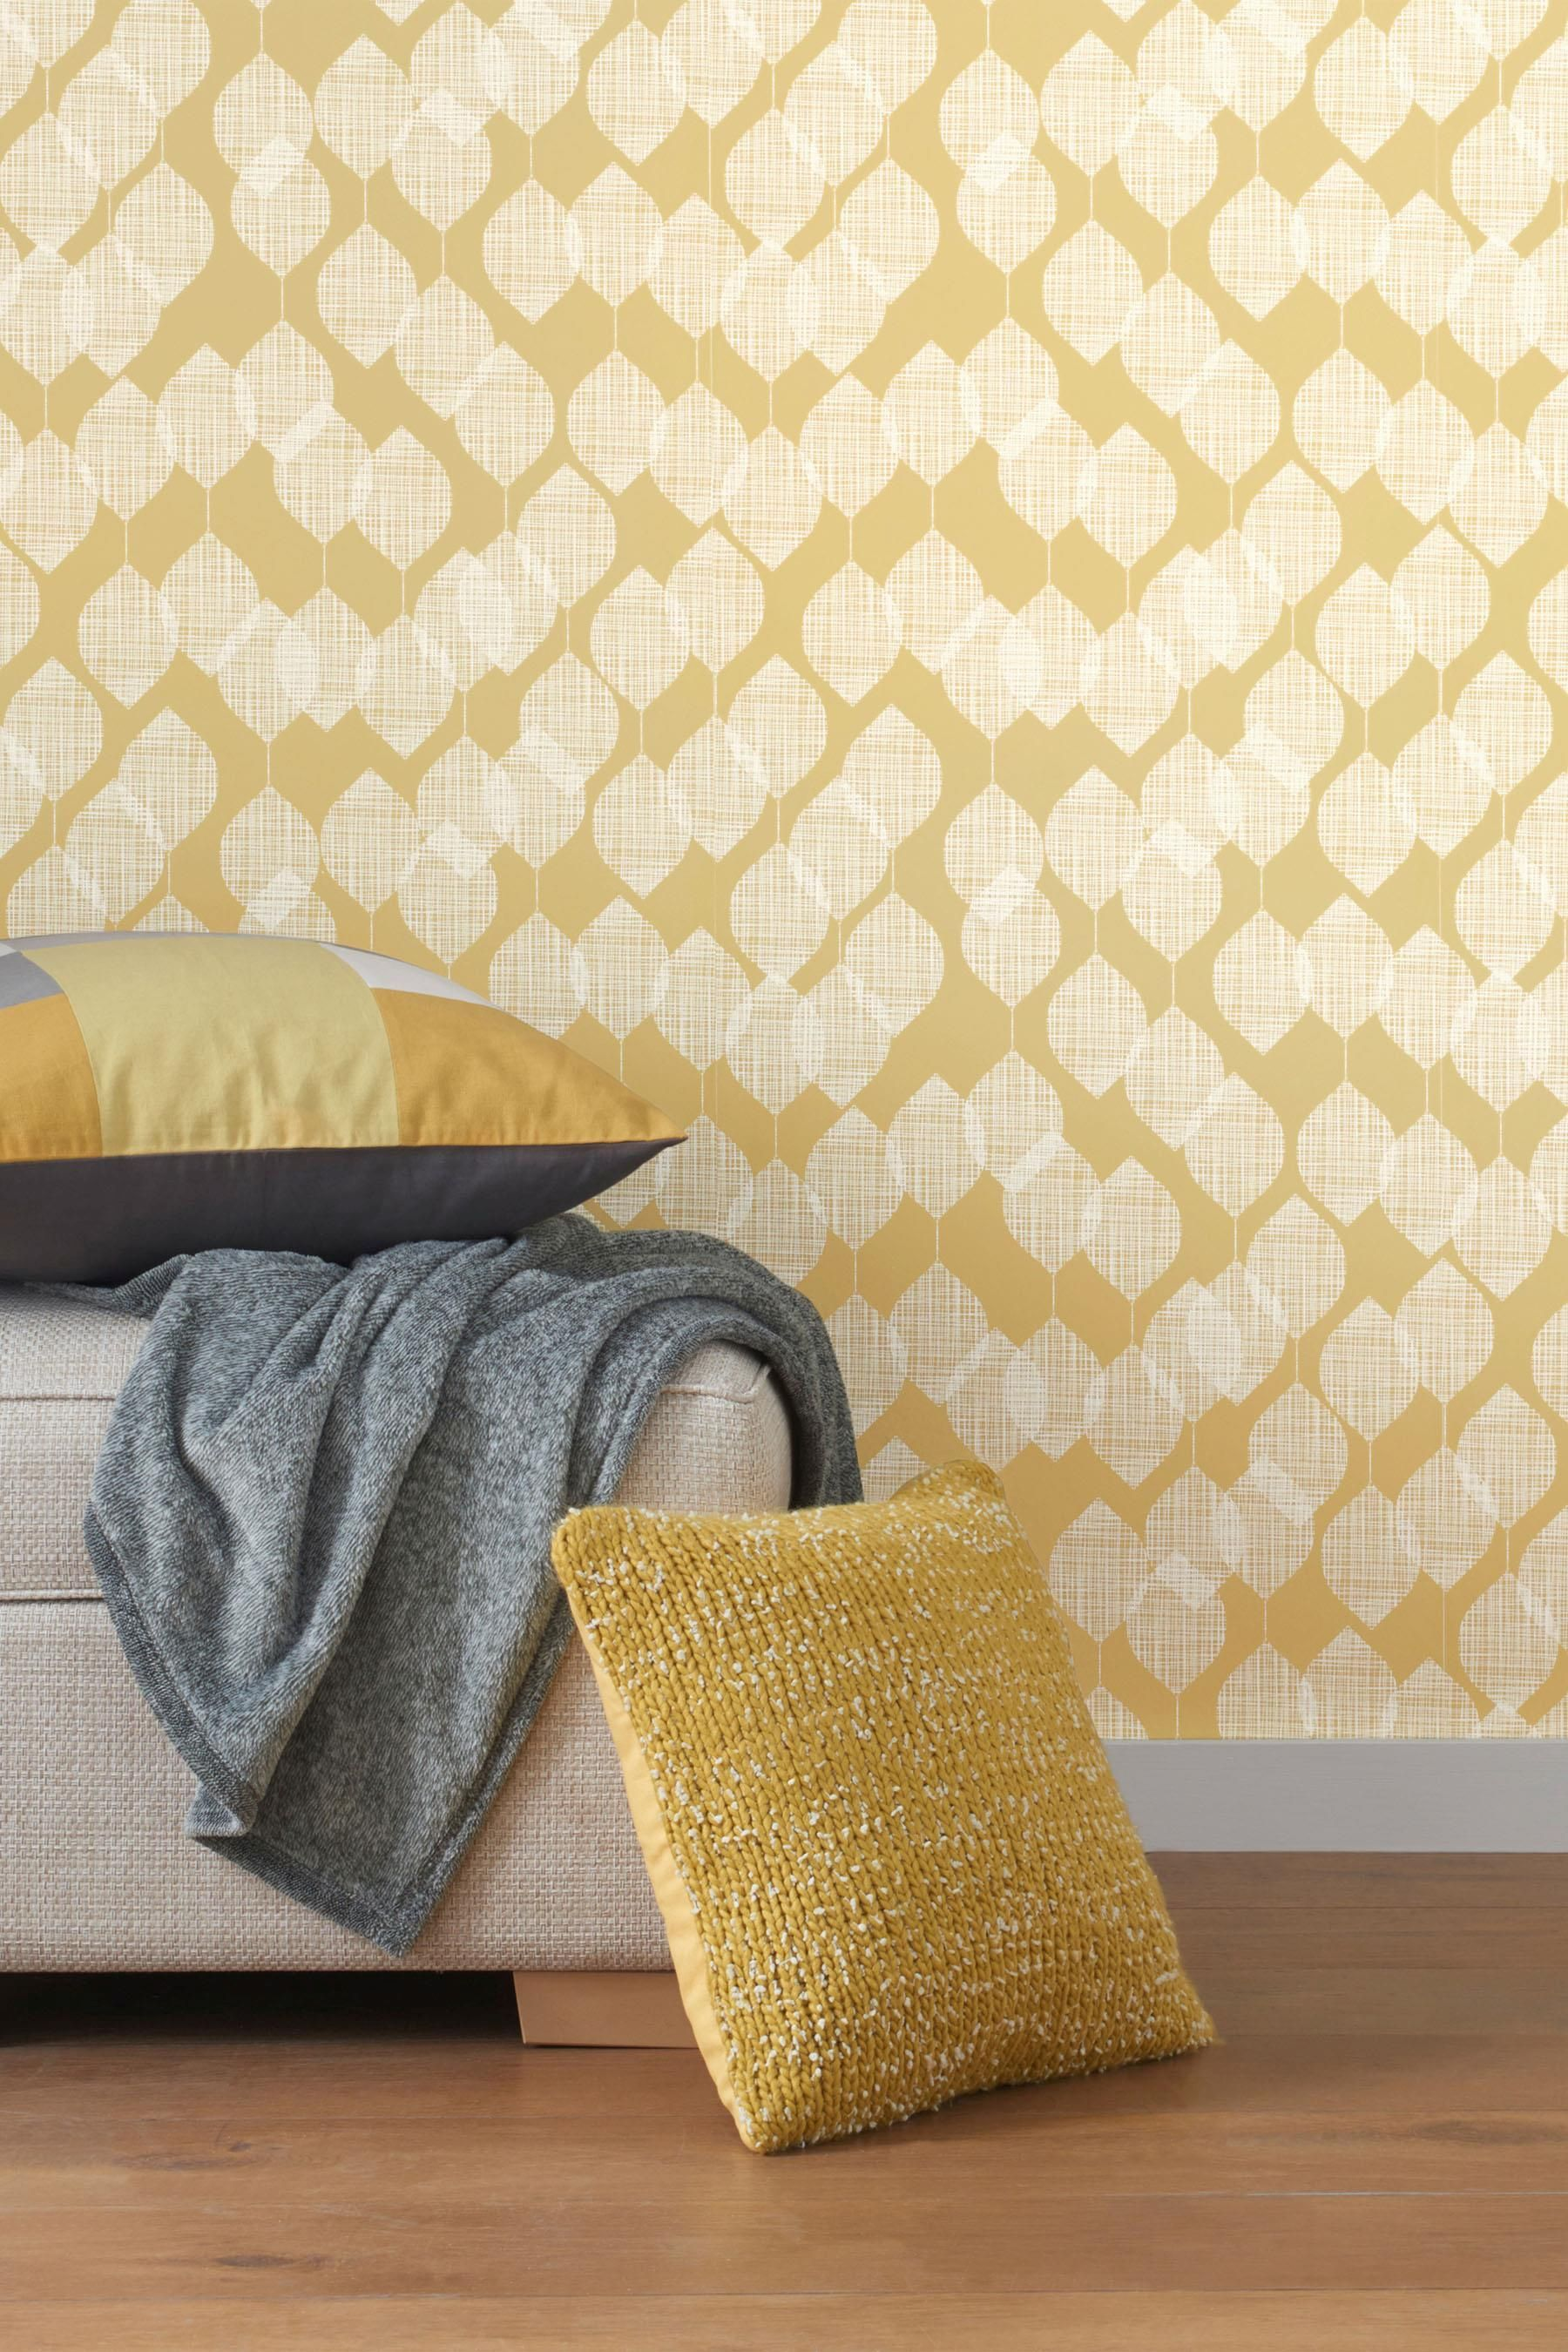 Buy Paste The Wall Ochre Leaf Wallpaper from the Next UK online shop ...